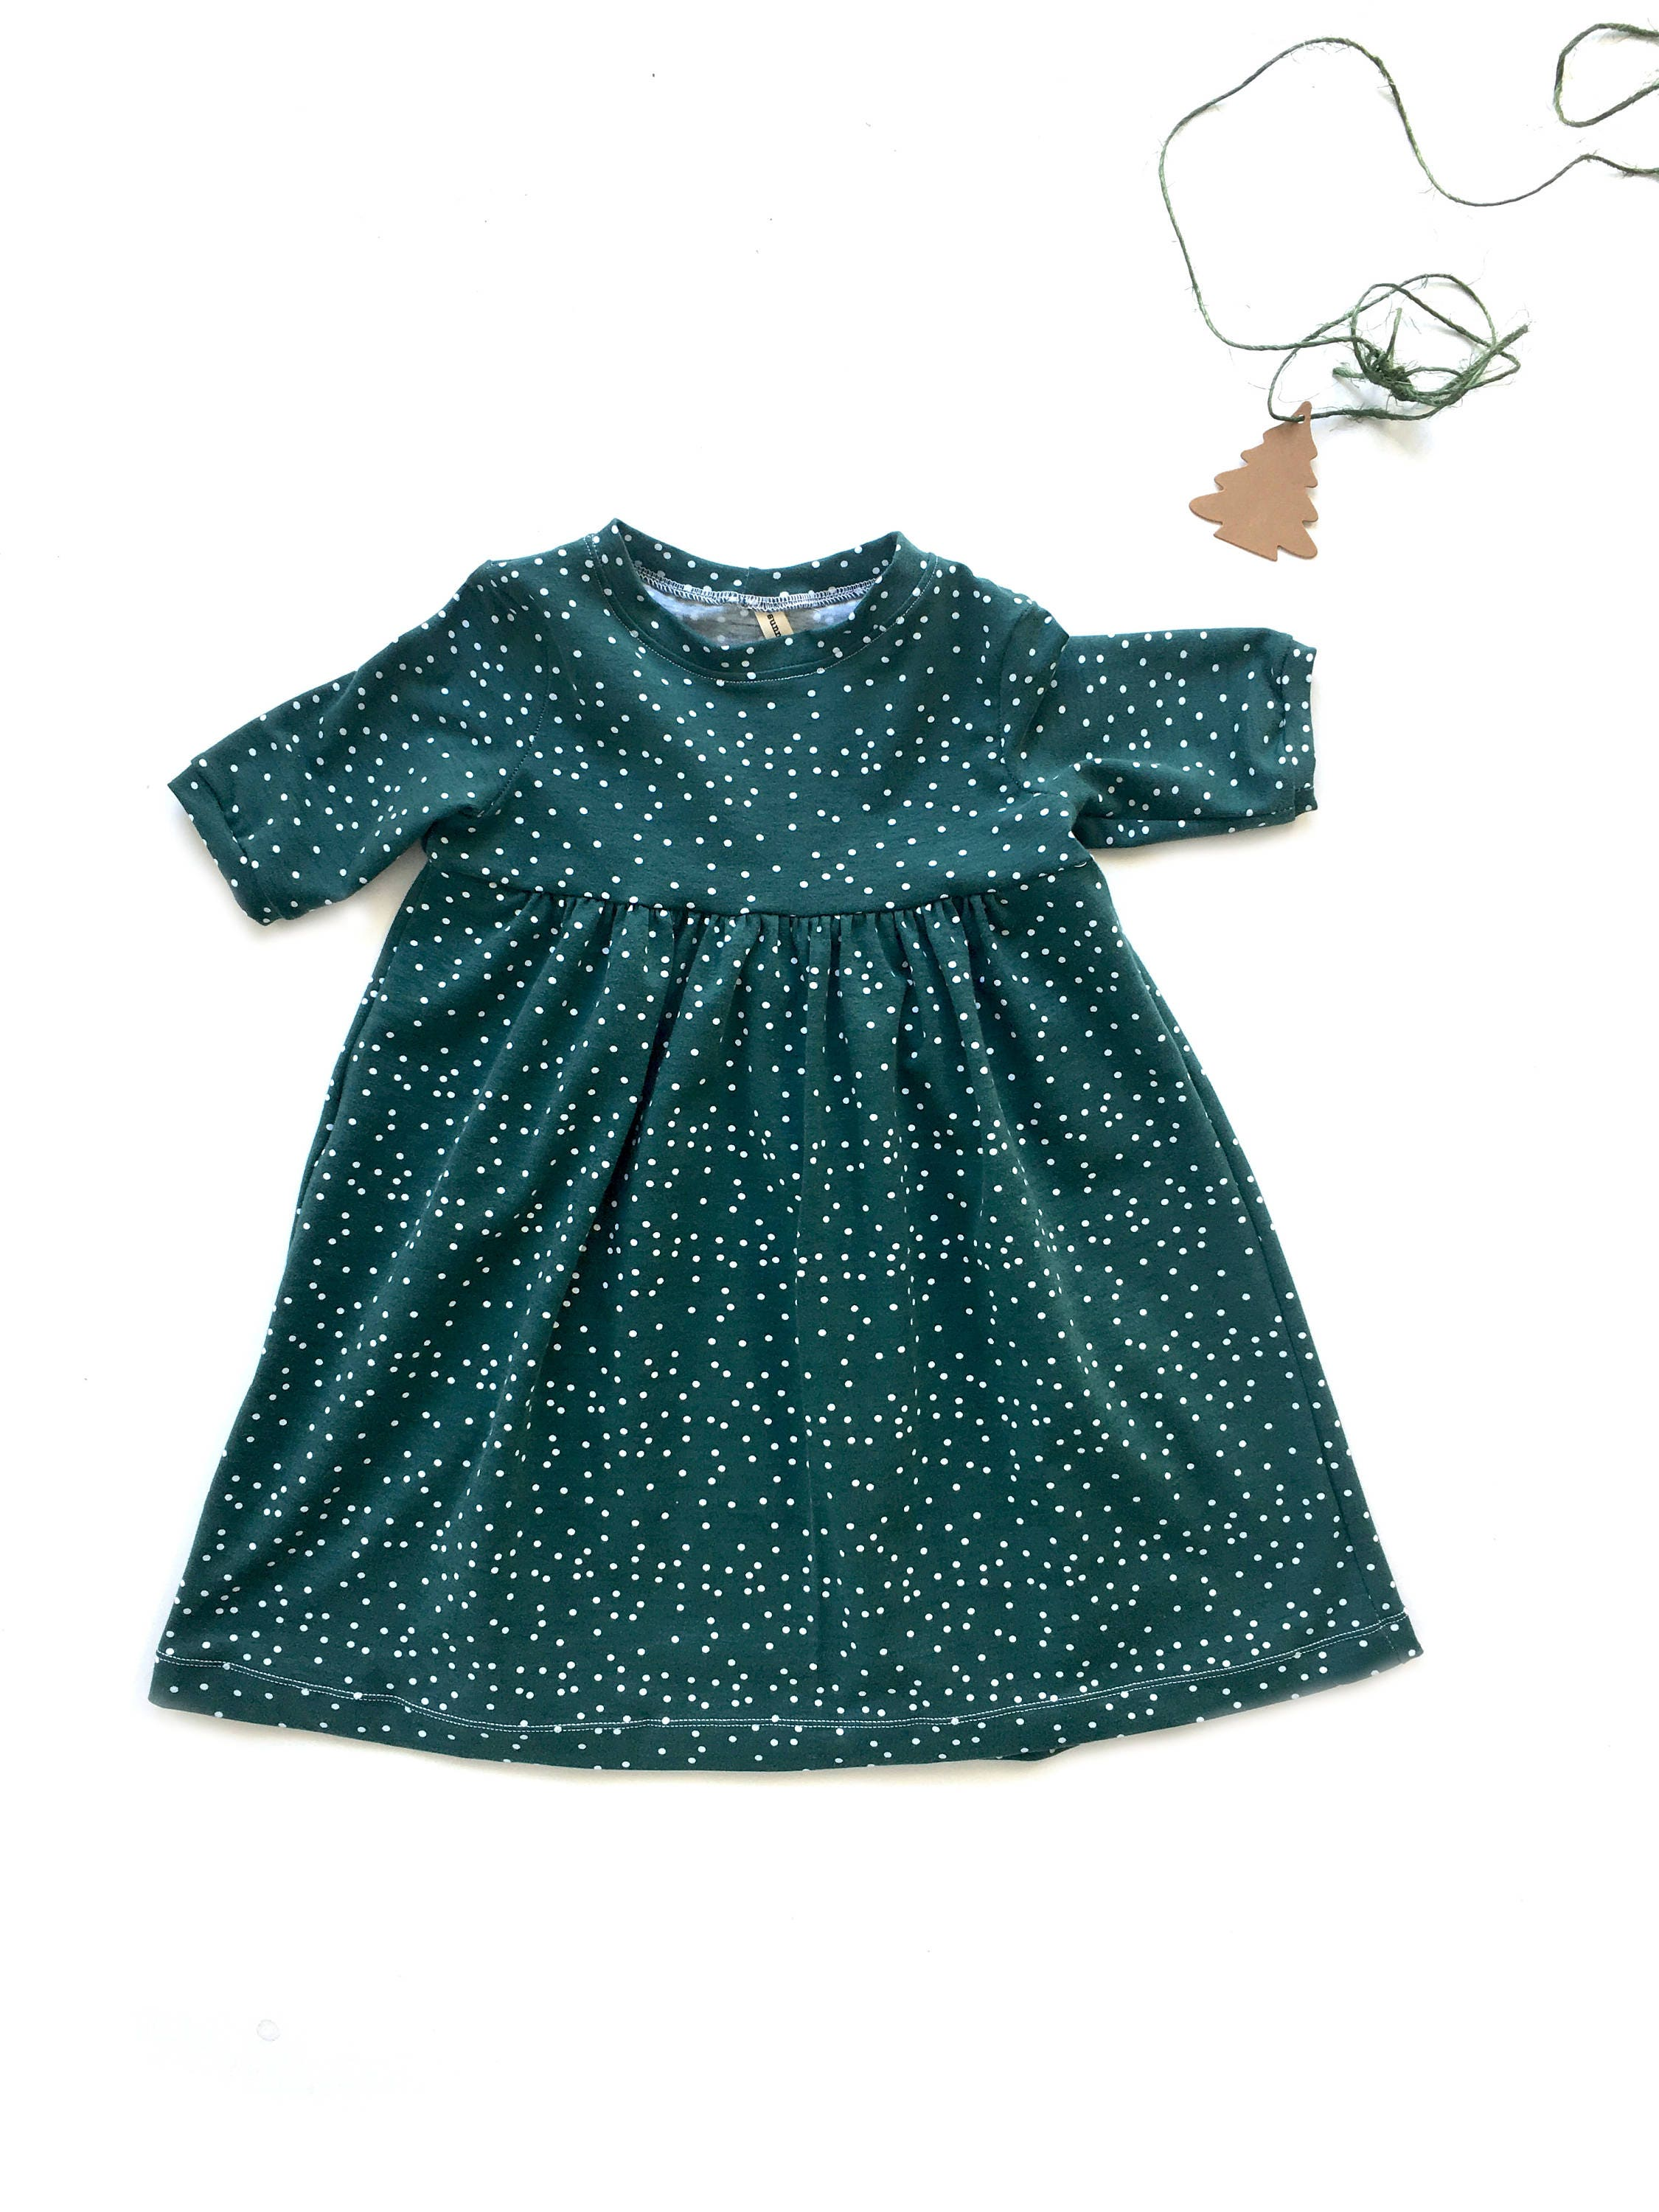 Organic baby dress christmas dress dress toddler dress green